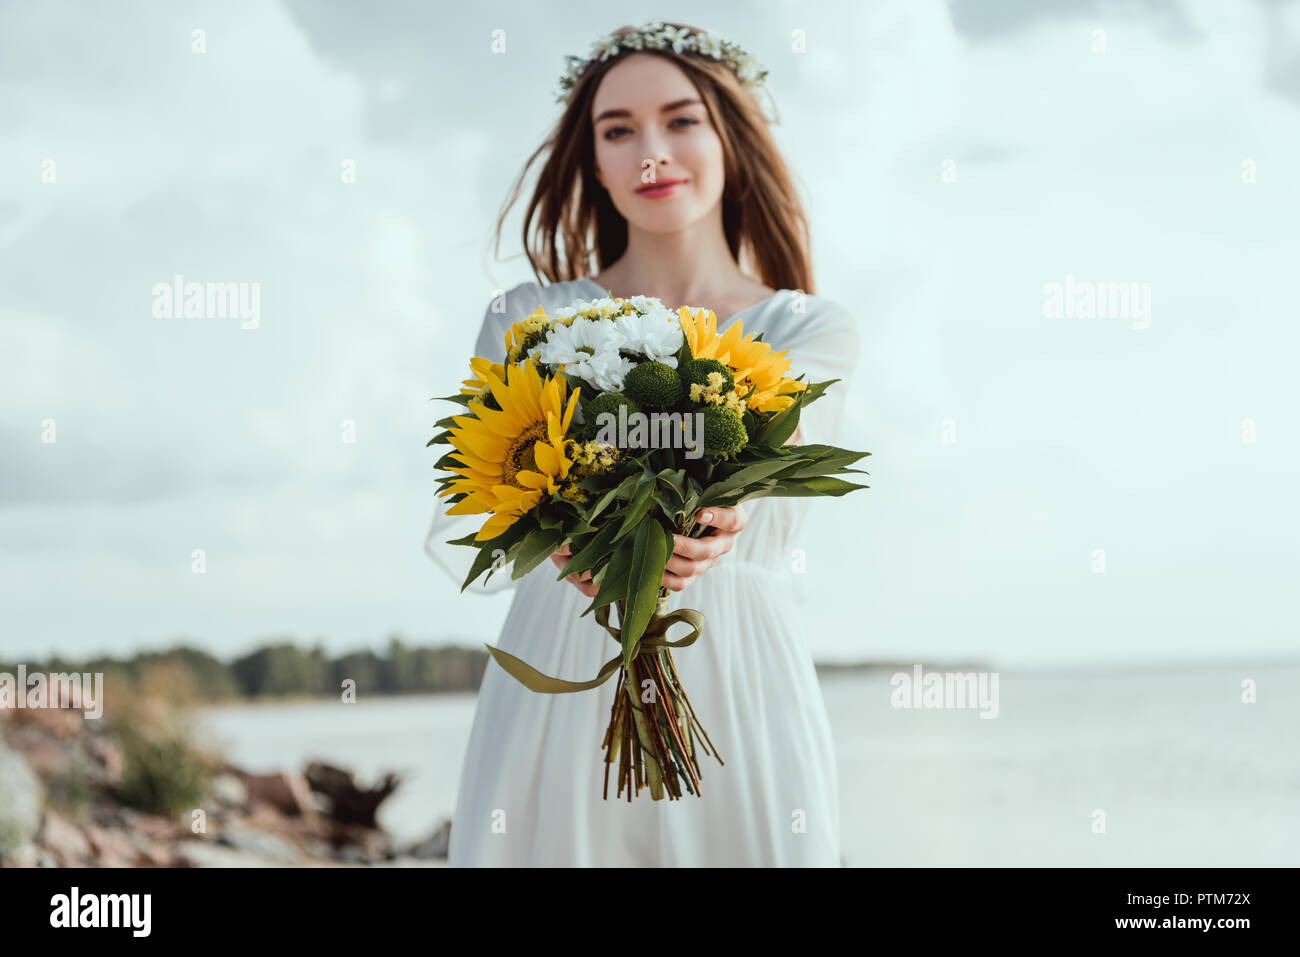 745b8a3bad beautiful elegant girl holding bouquet with yellow sunflowers Stock ...